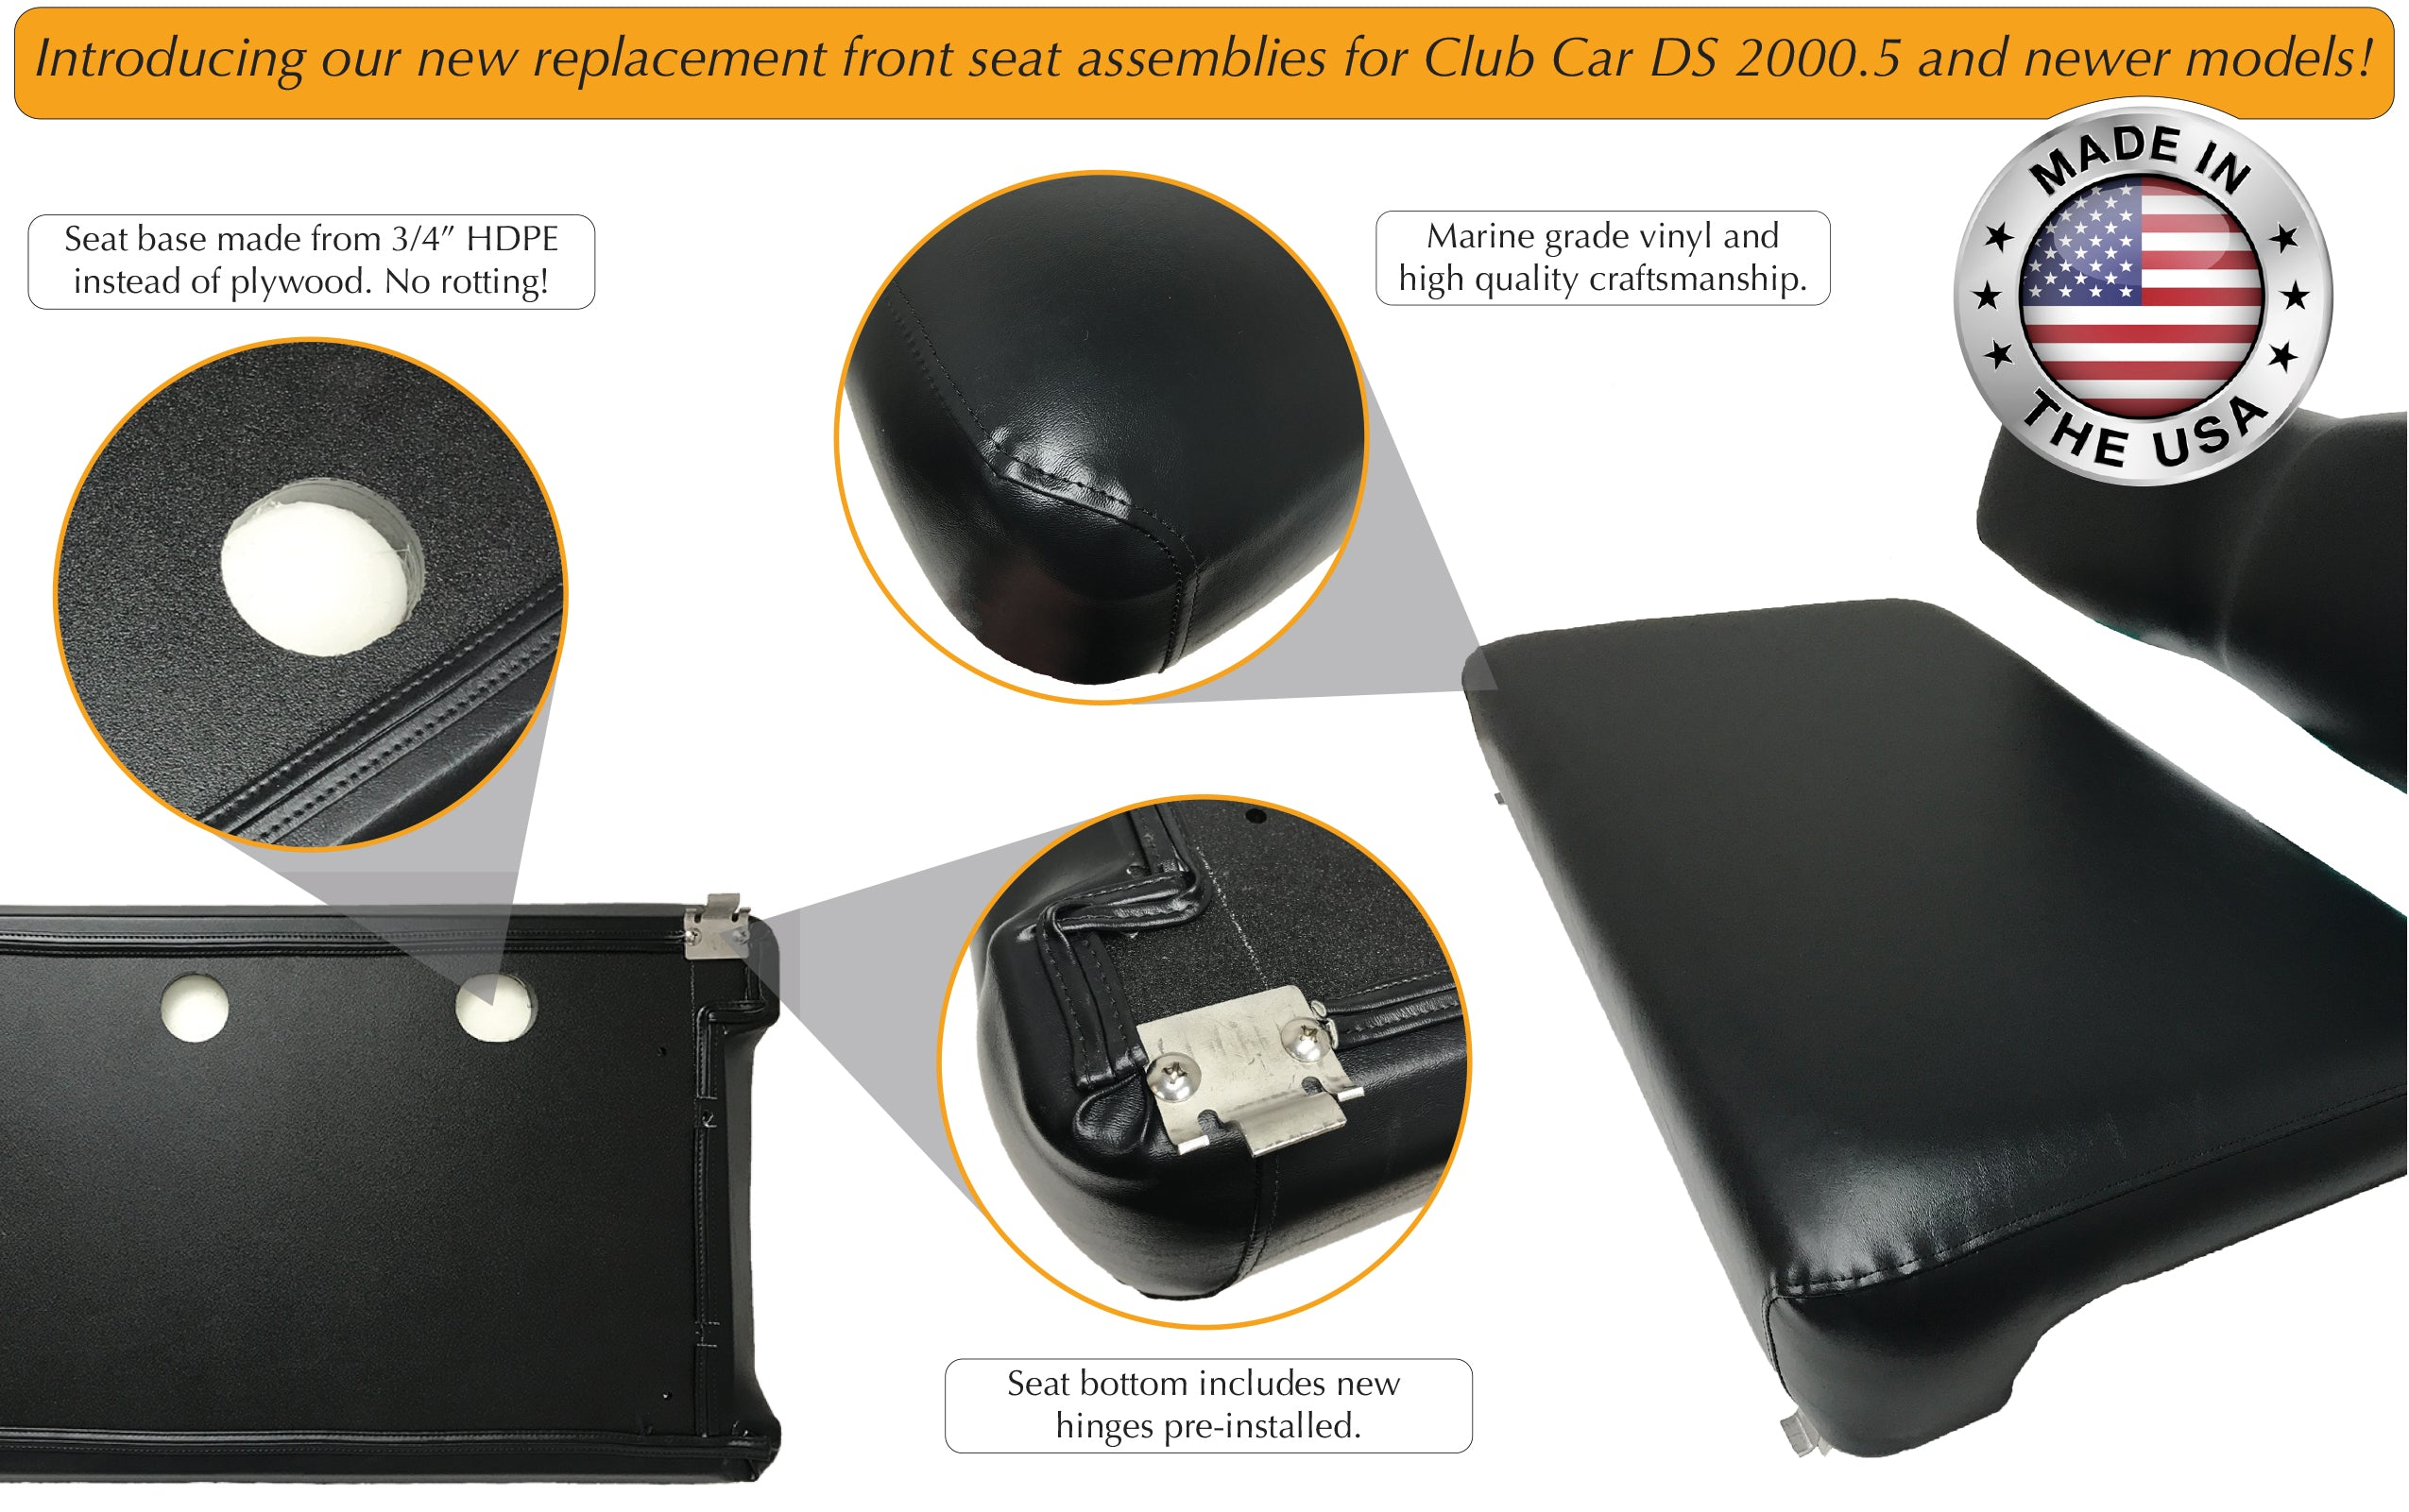 Description for golf cart front seat assembly replacements.